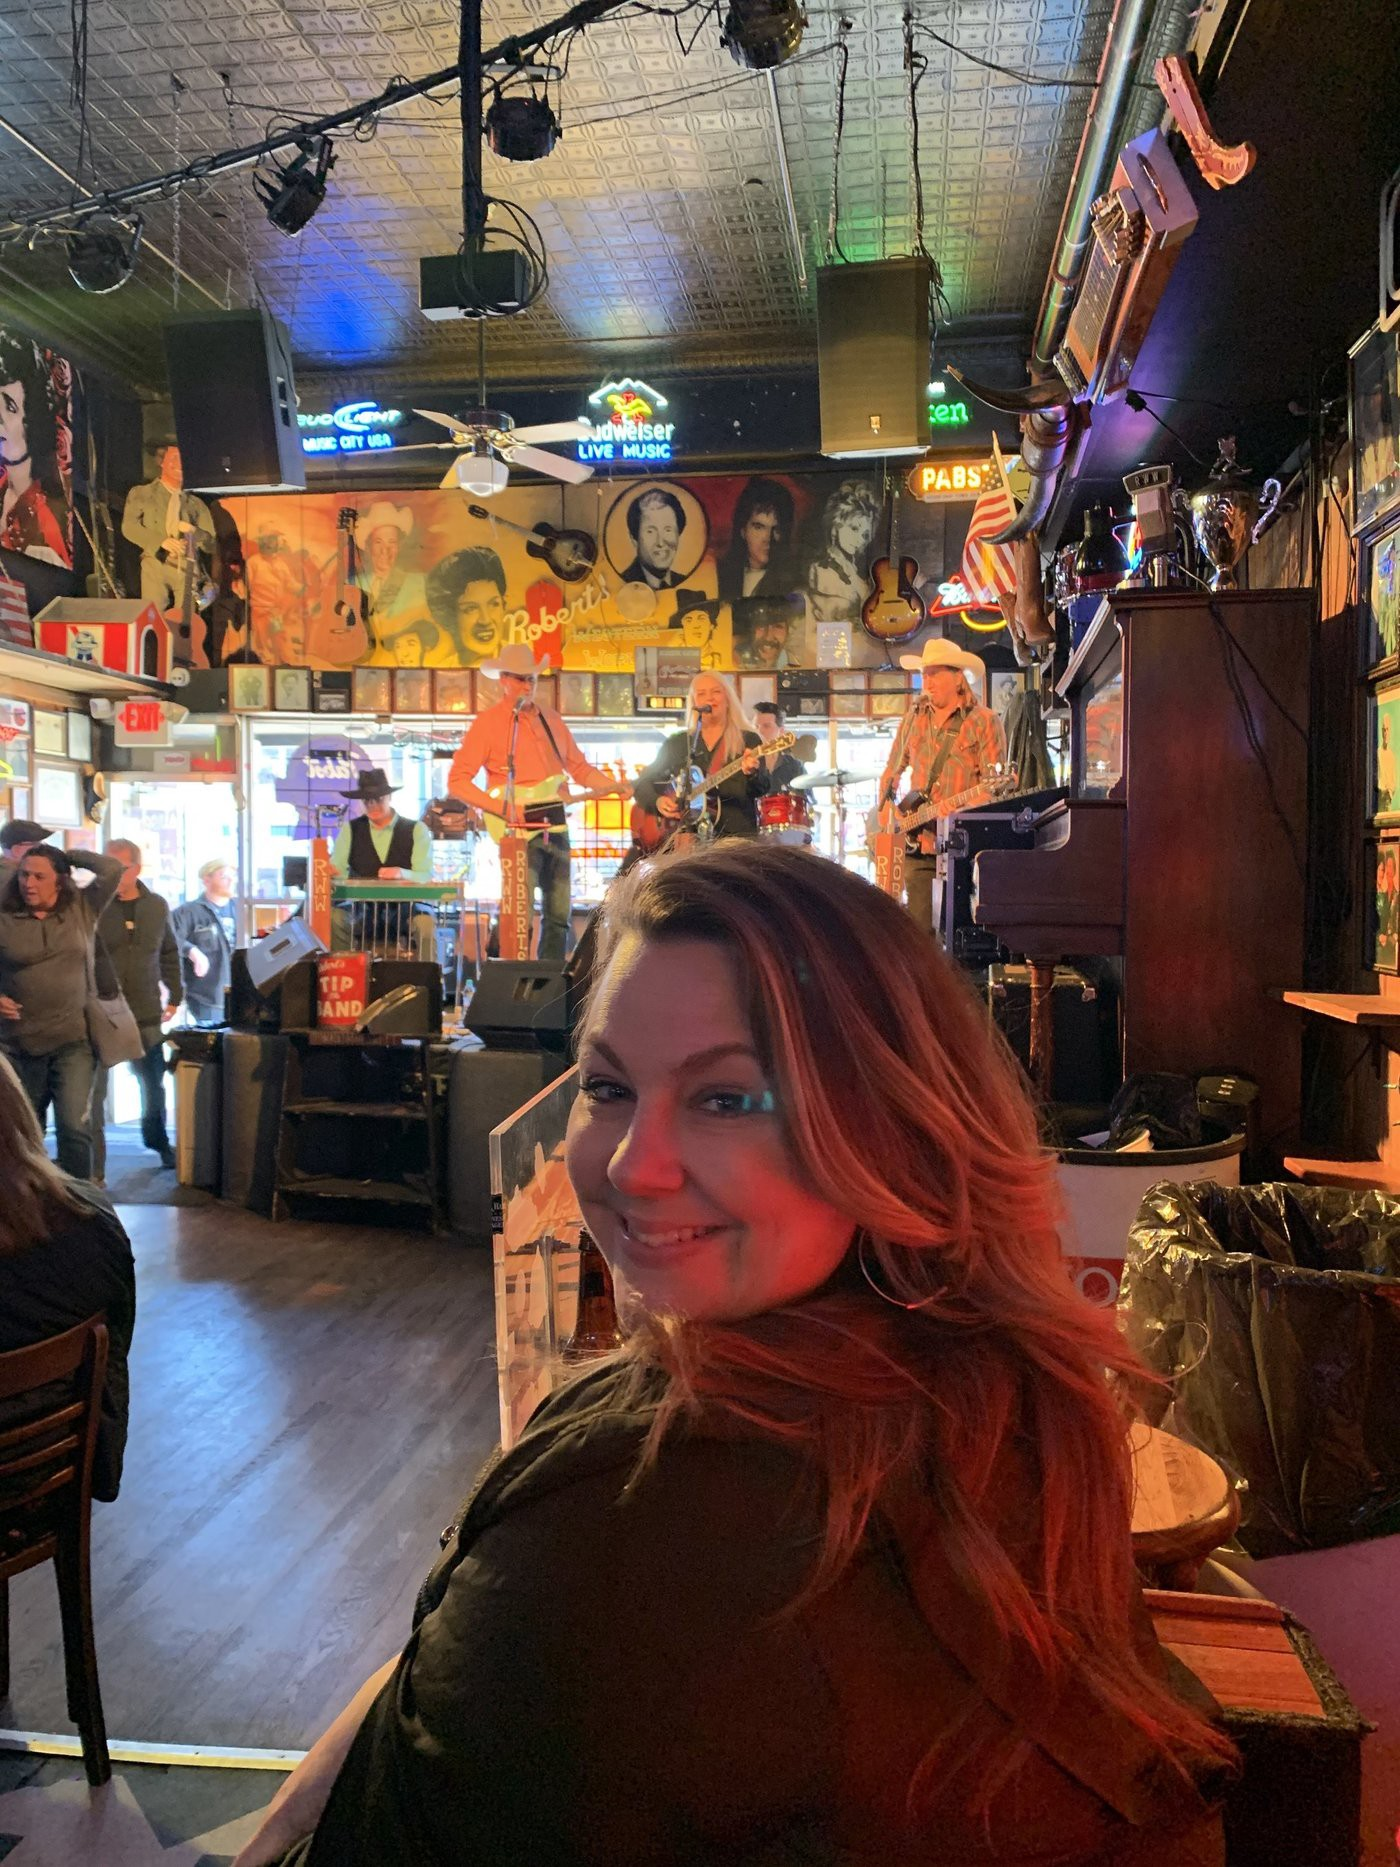 Sarah Sweeney in Robert's Western World. Nashville, TN. March 2020